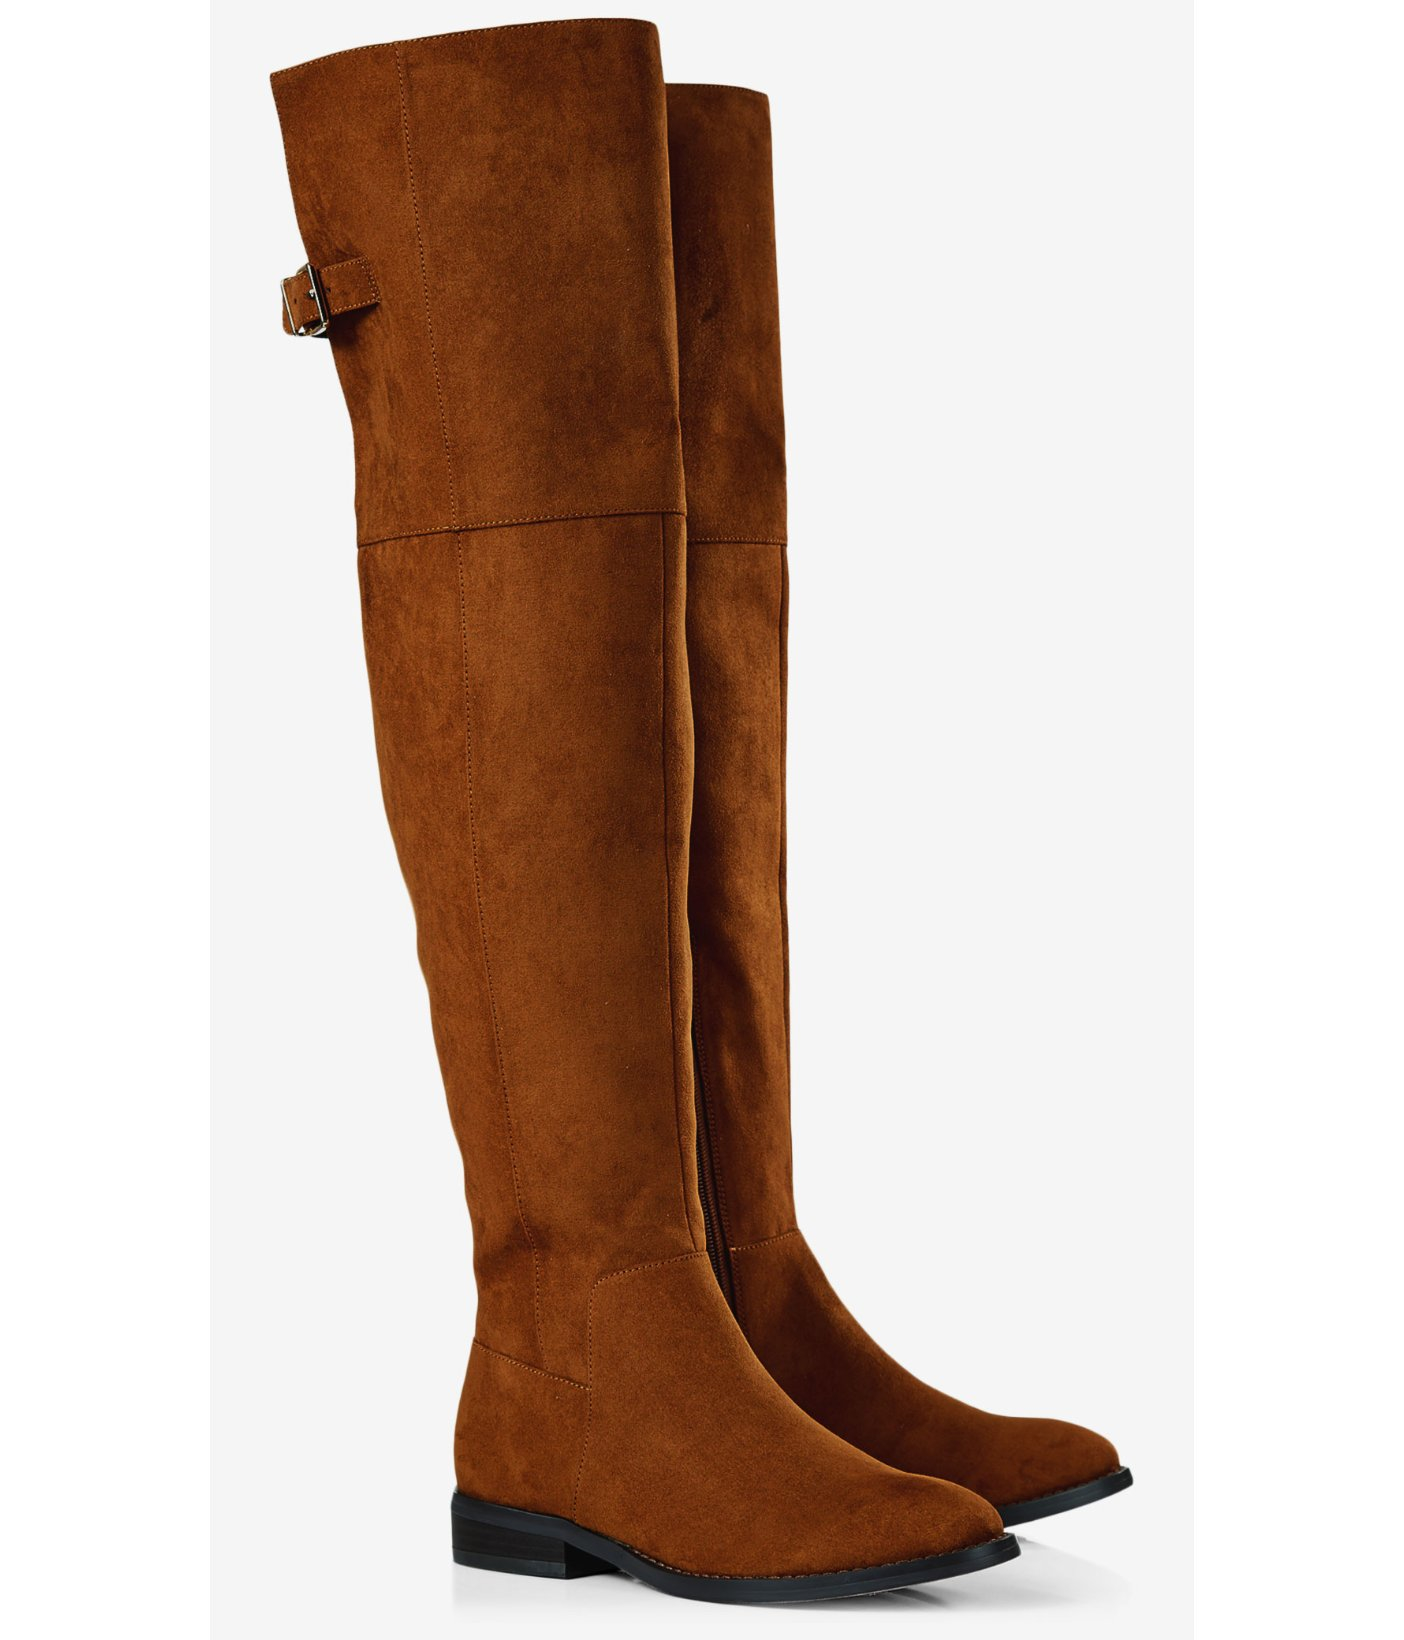 Express Faux Suede Over-the-knee Flat Boot in Brown | Lyst